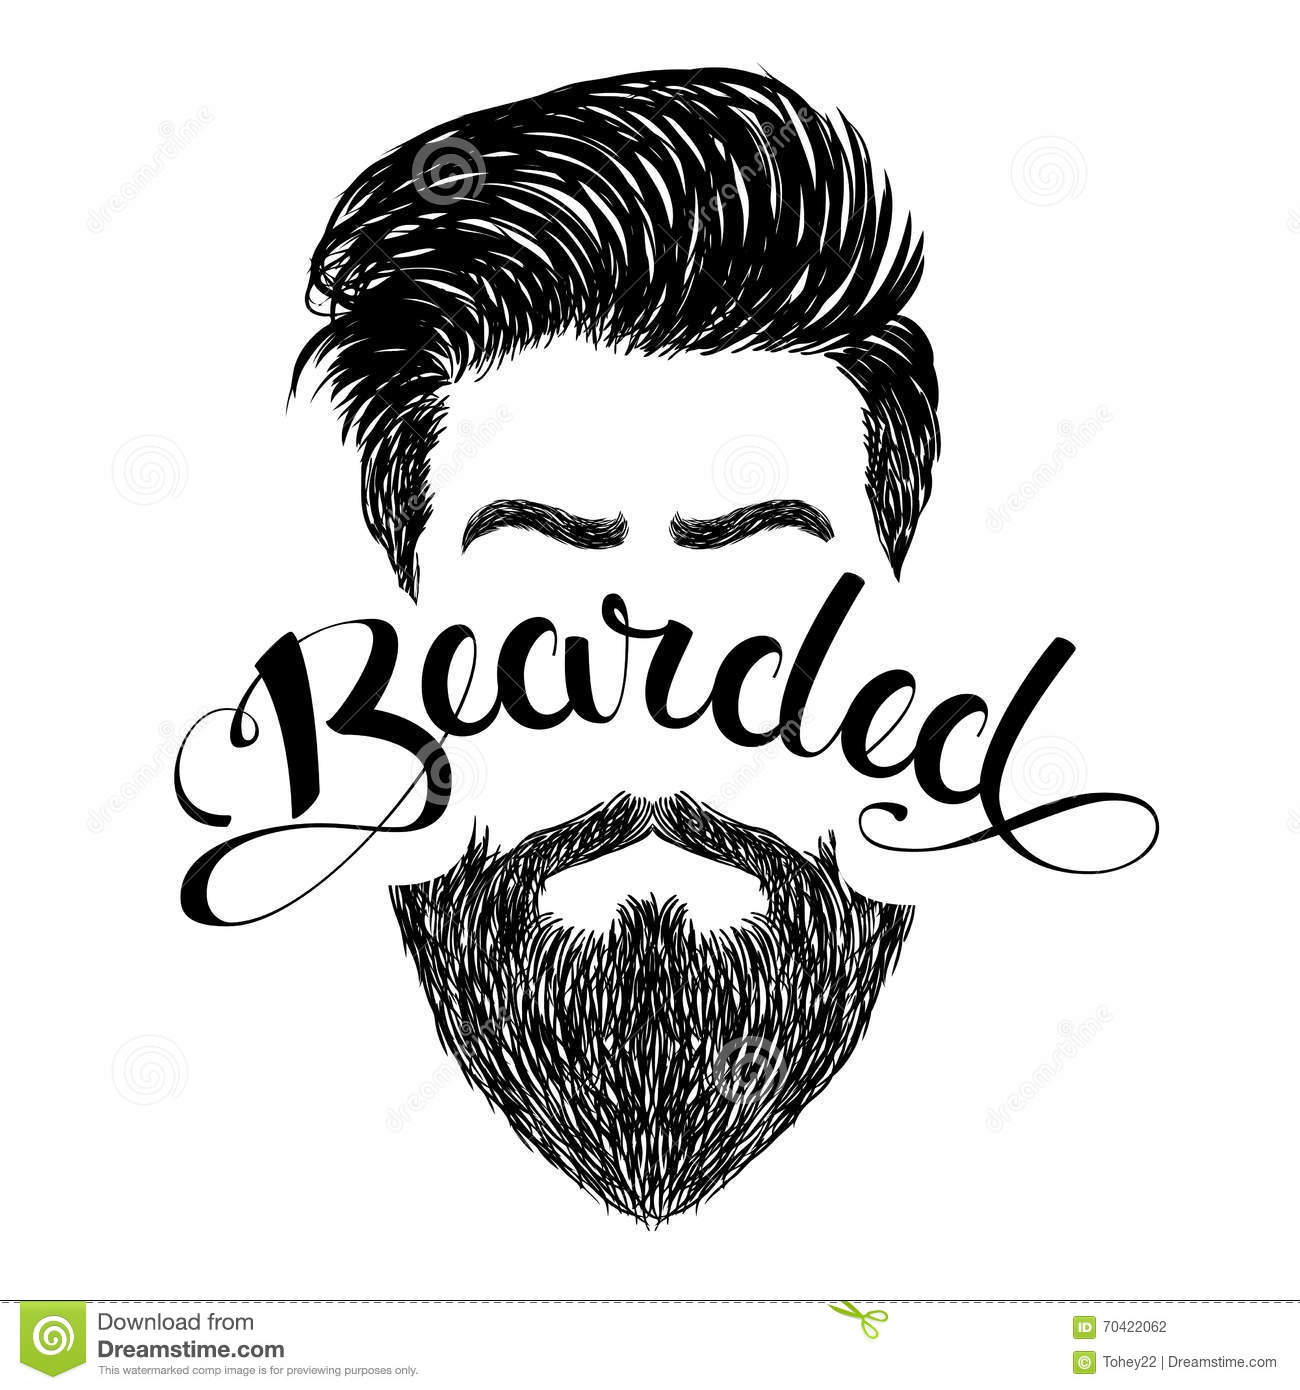 Bearded Cartoons Illustrations  Vector Stock Images  8920 Pictures to download from